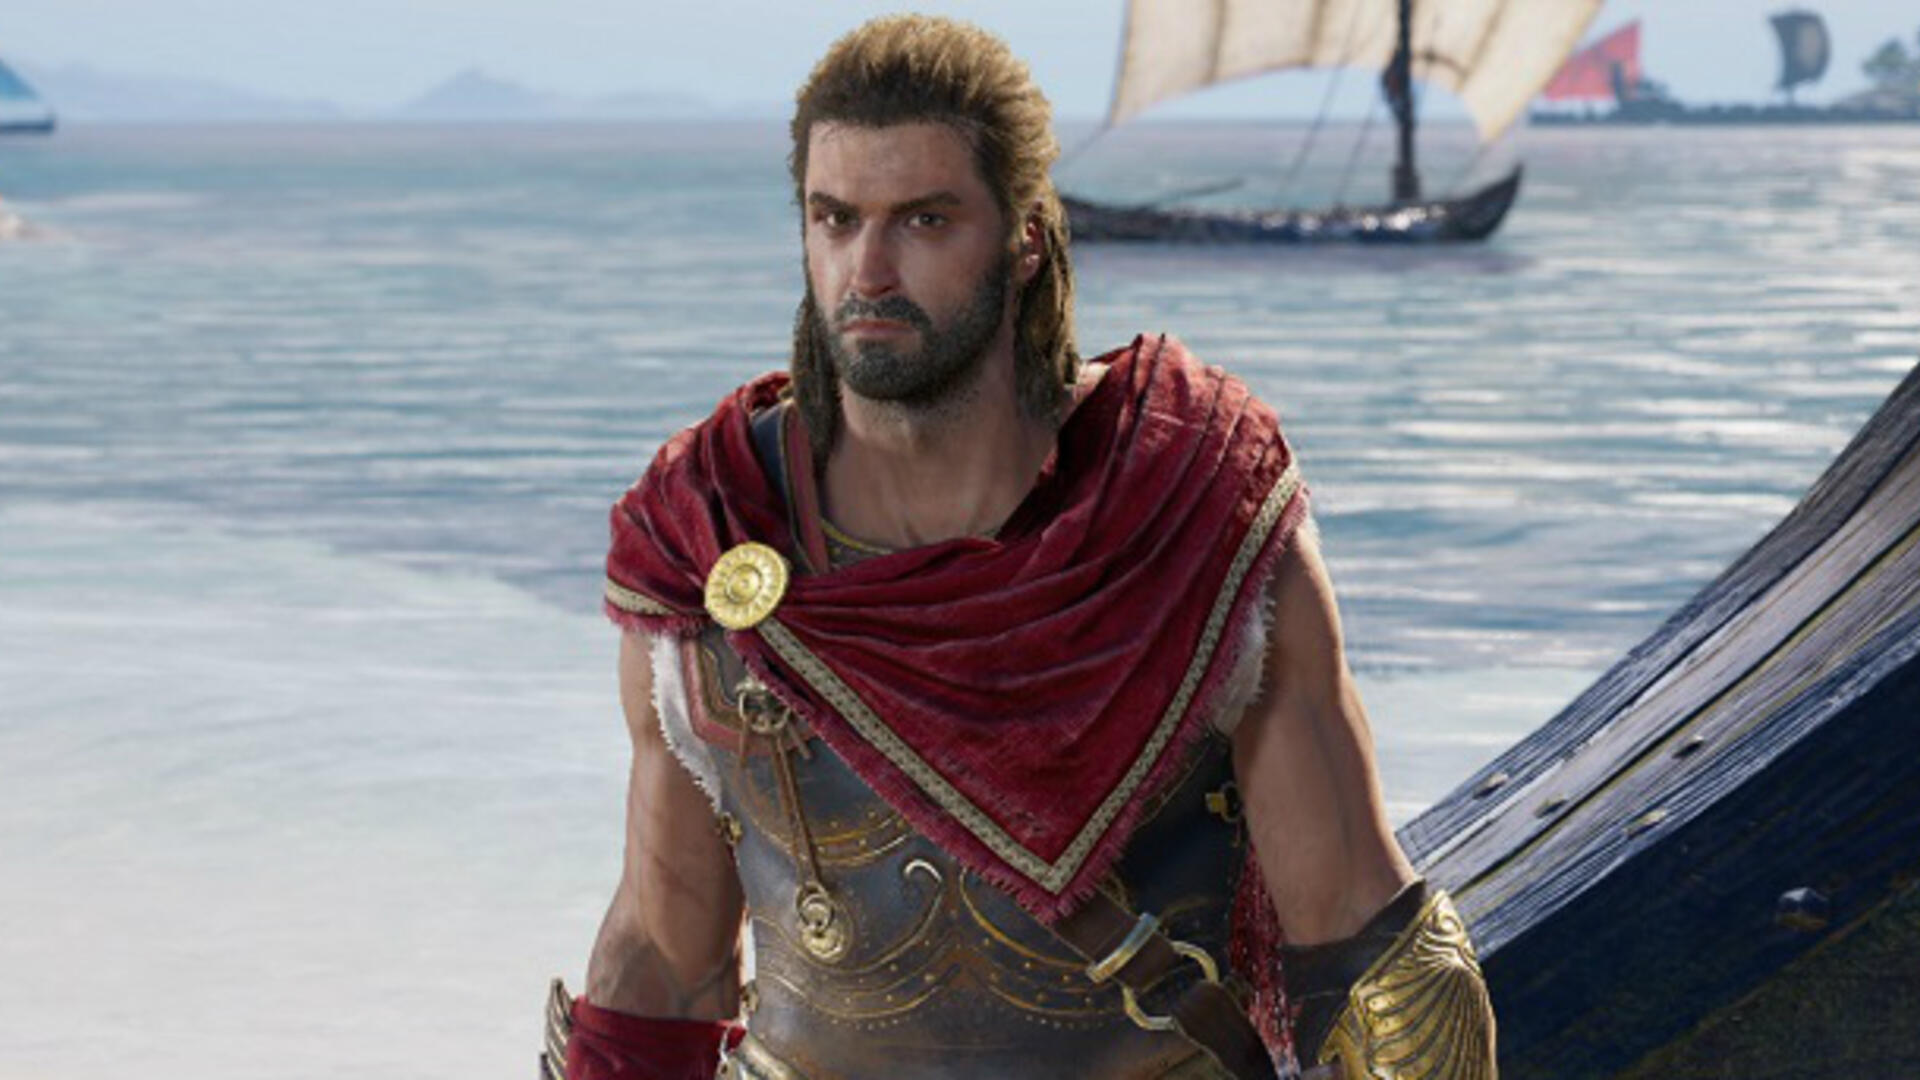 Assassin's Creed Odyssey Picks Up BioWare's RPG Baton: 5 Things We Learned